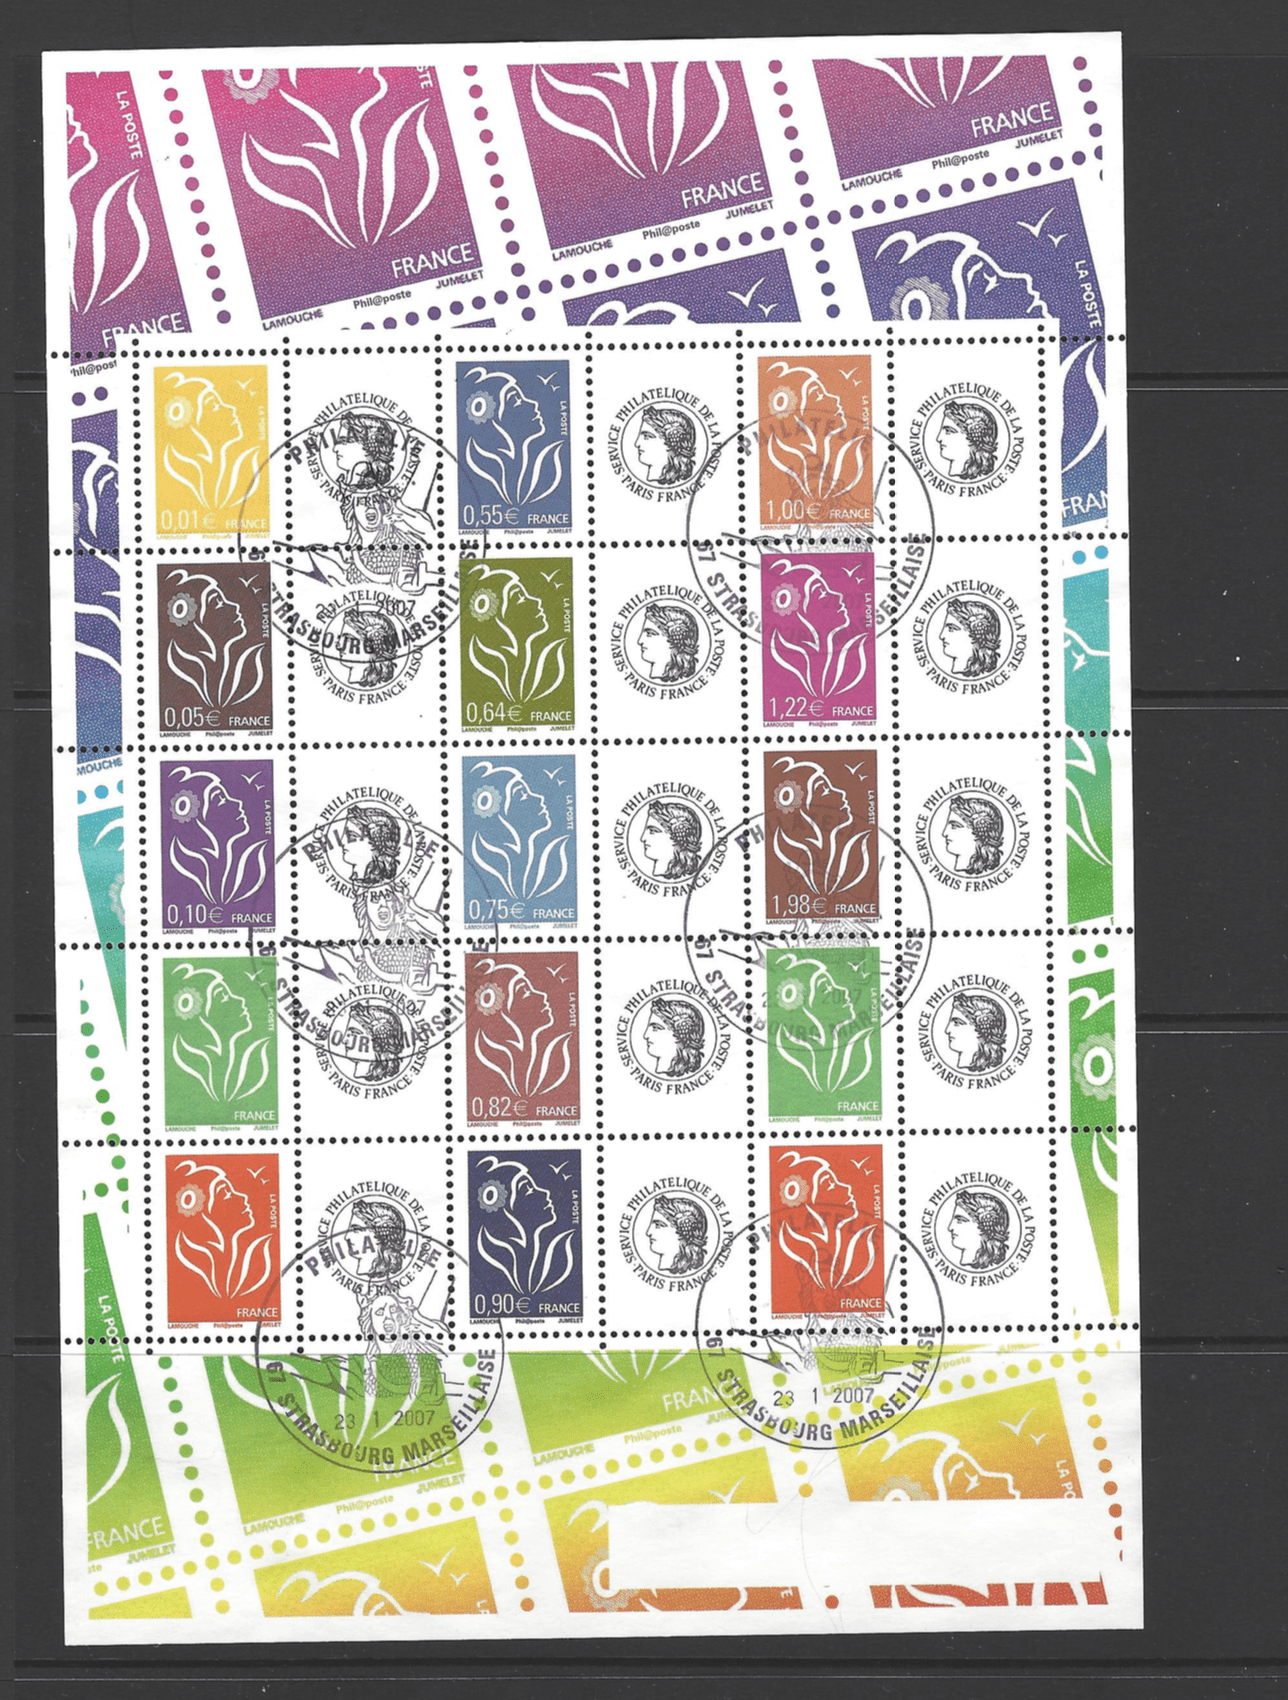 Yvert Personnalises F4048A, France Stamps, Yvert et Tellier Stamps